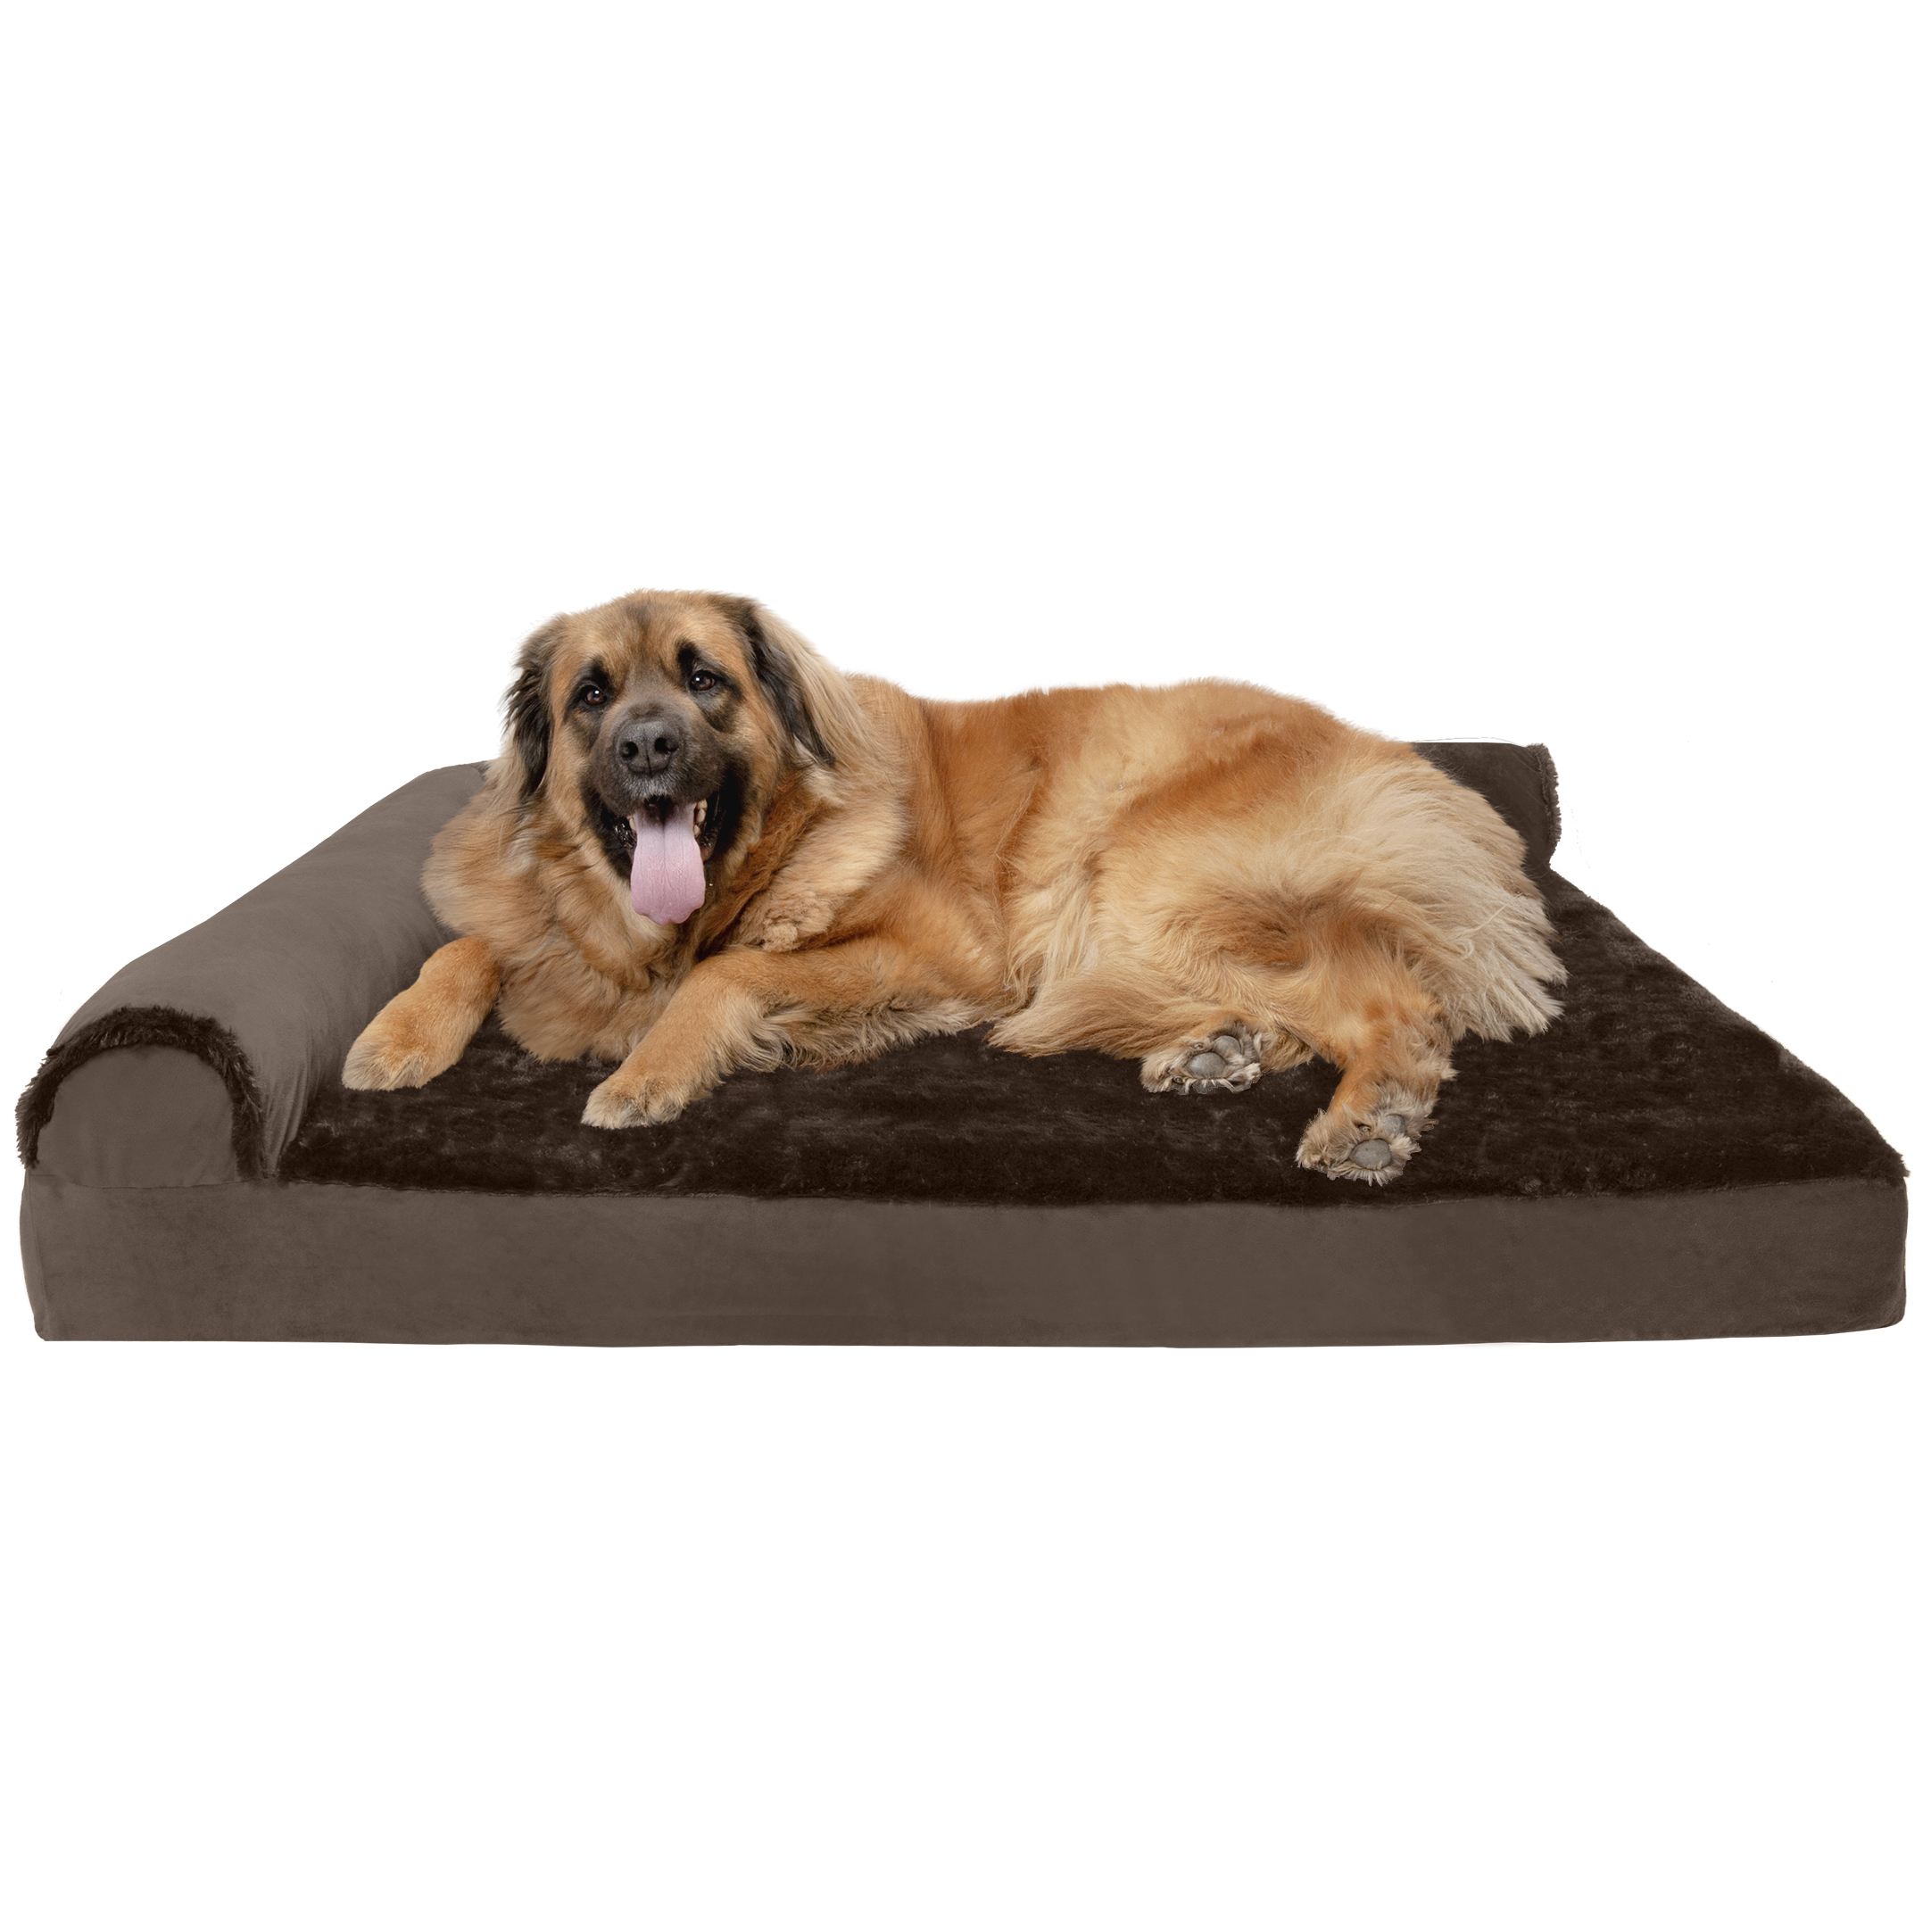 FurHaven Pet Dog Bed | Deluxe Orthopedic Plush & Velvet L-Shaped Chaise Couch Pet Bed for Dogs & Cats, Sable Brown, Jumbo Plus